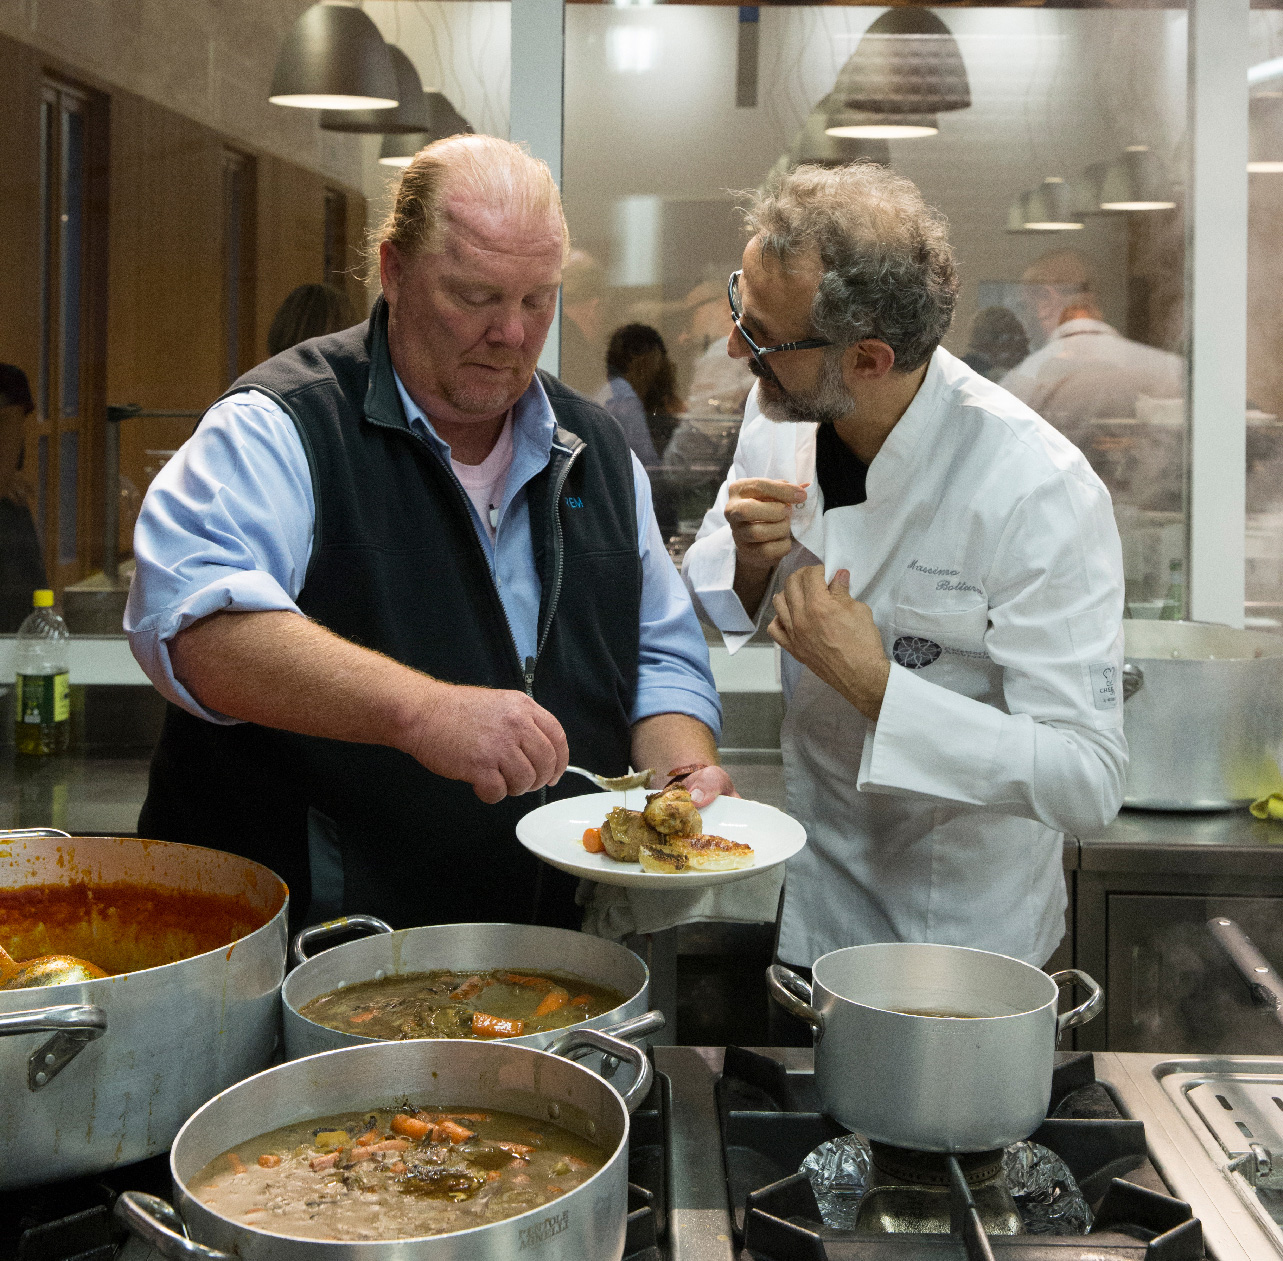 Massimo Bottura and Mario Batali create kitchen alchemy